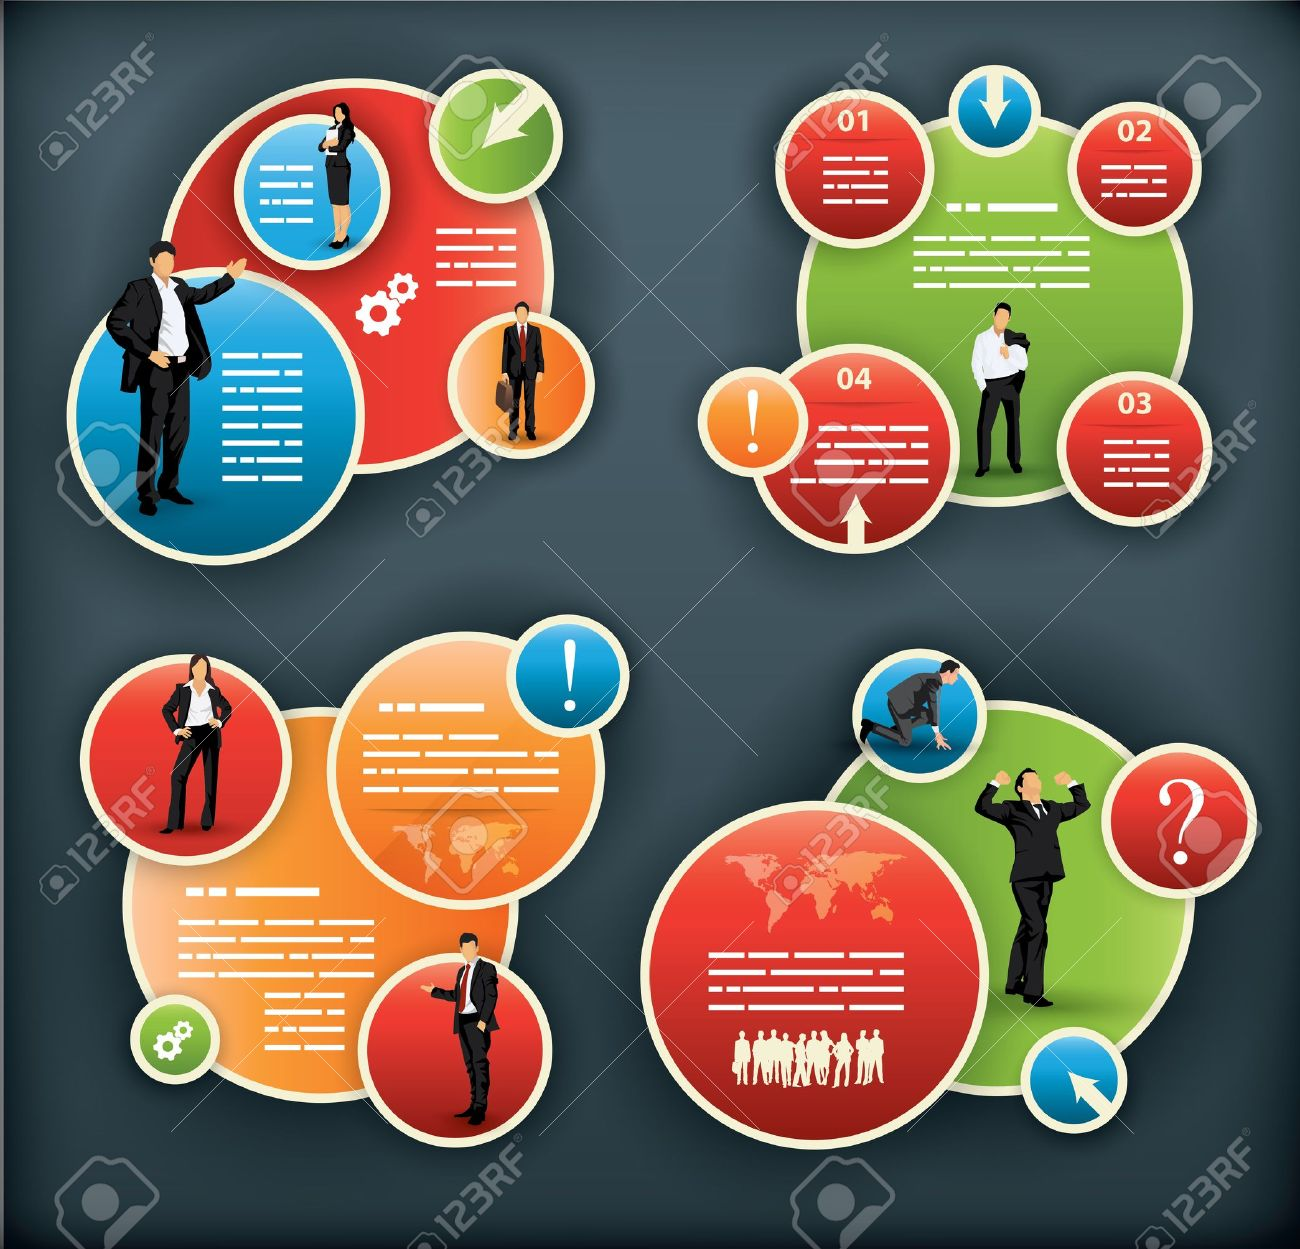 An infographic template for corporate and business with spherical elements and people illustrations Stock Vector - 18085138